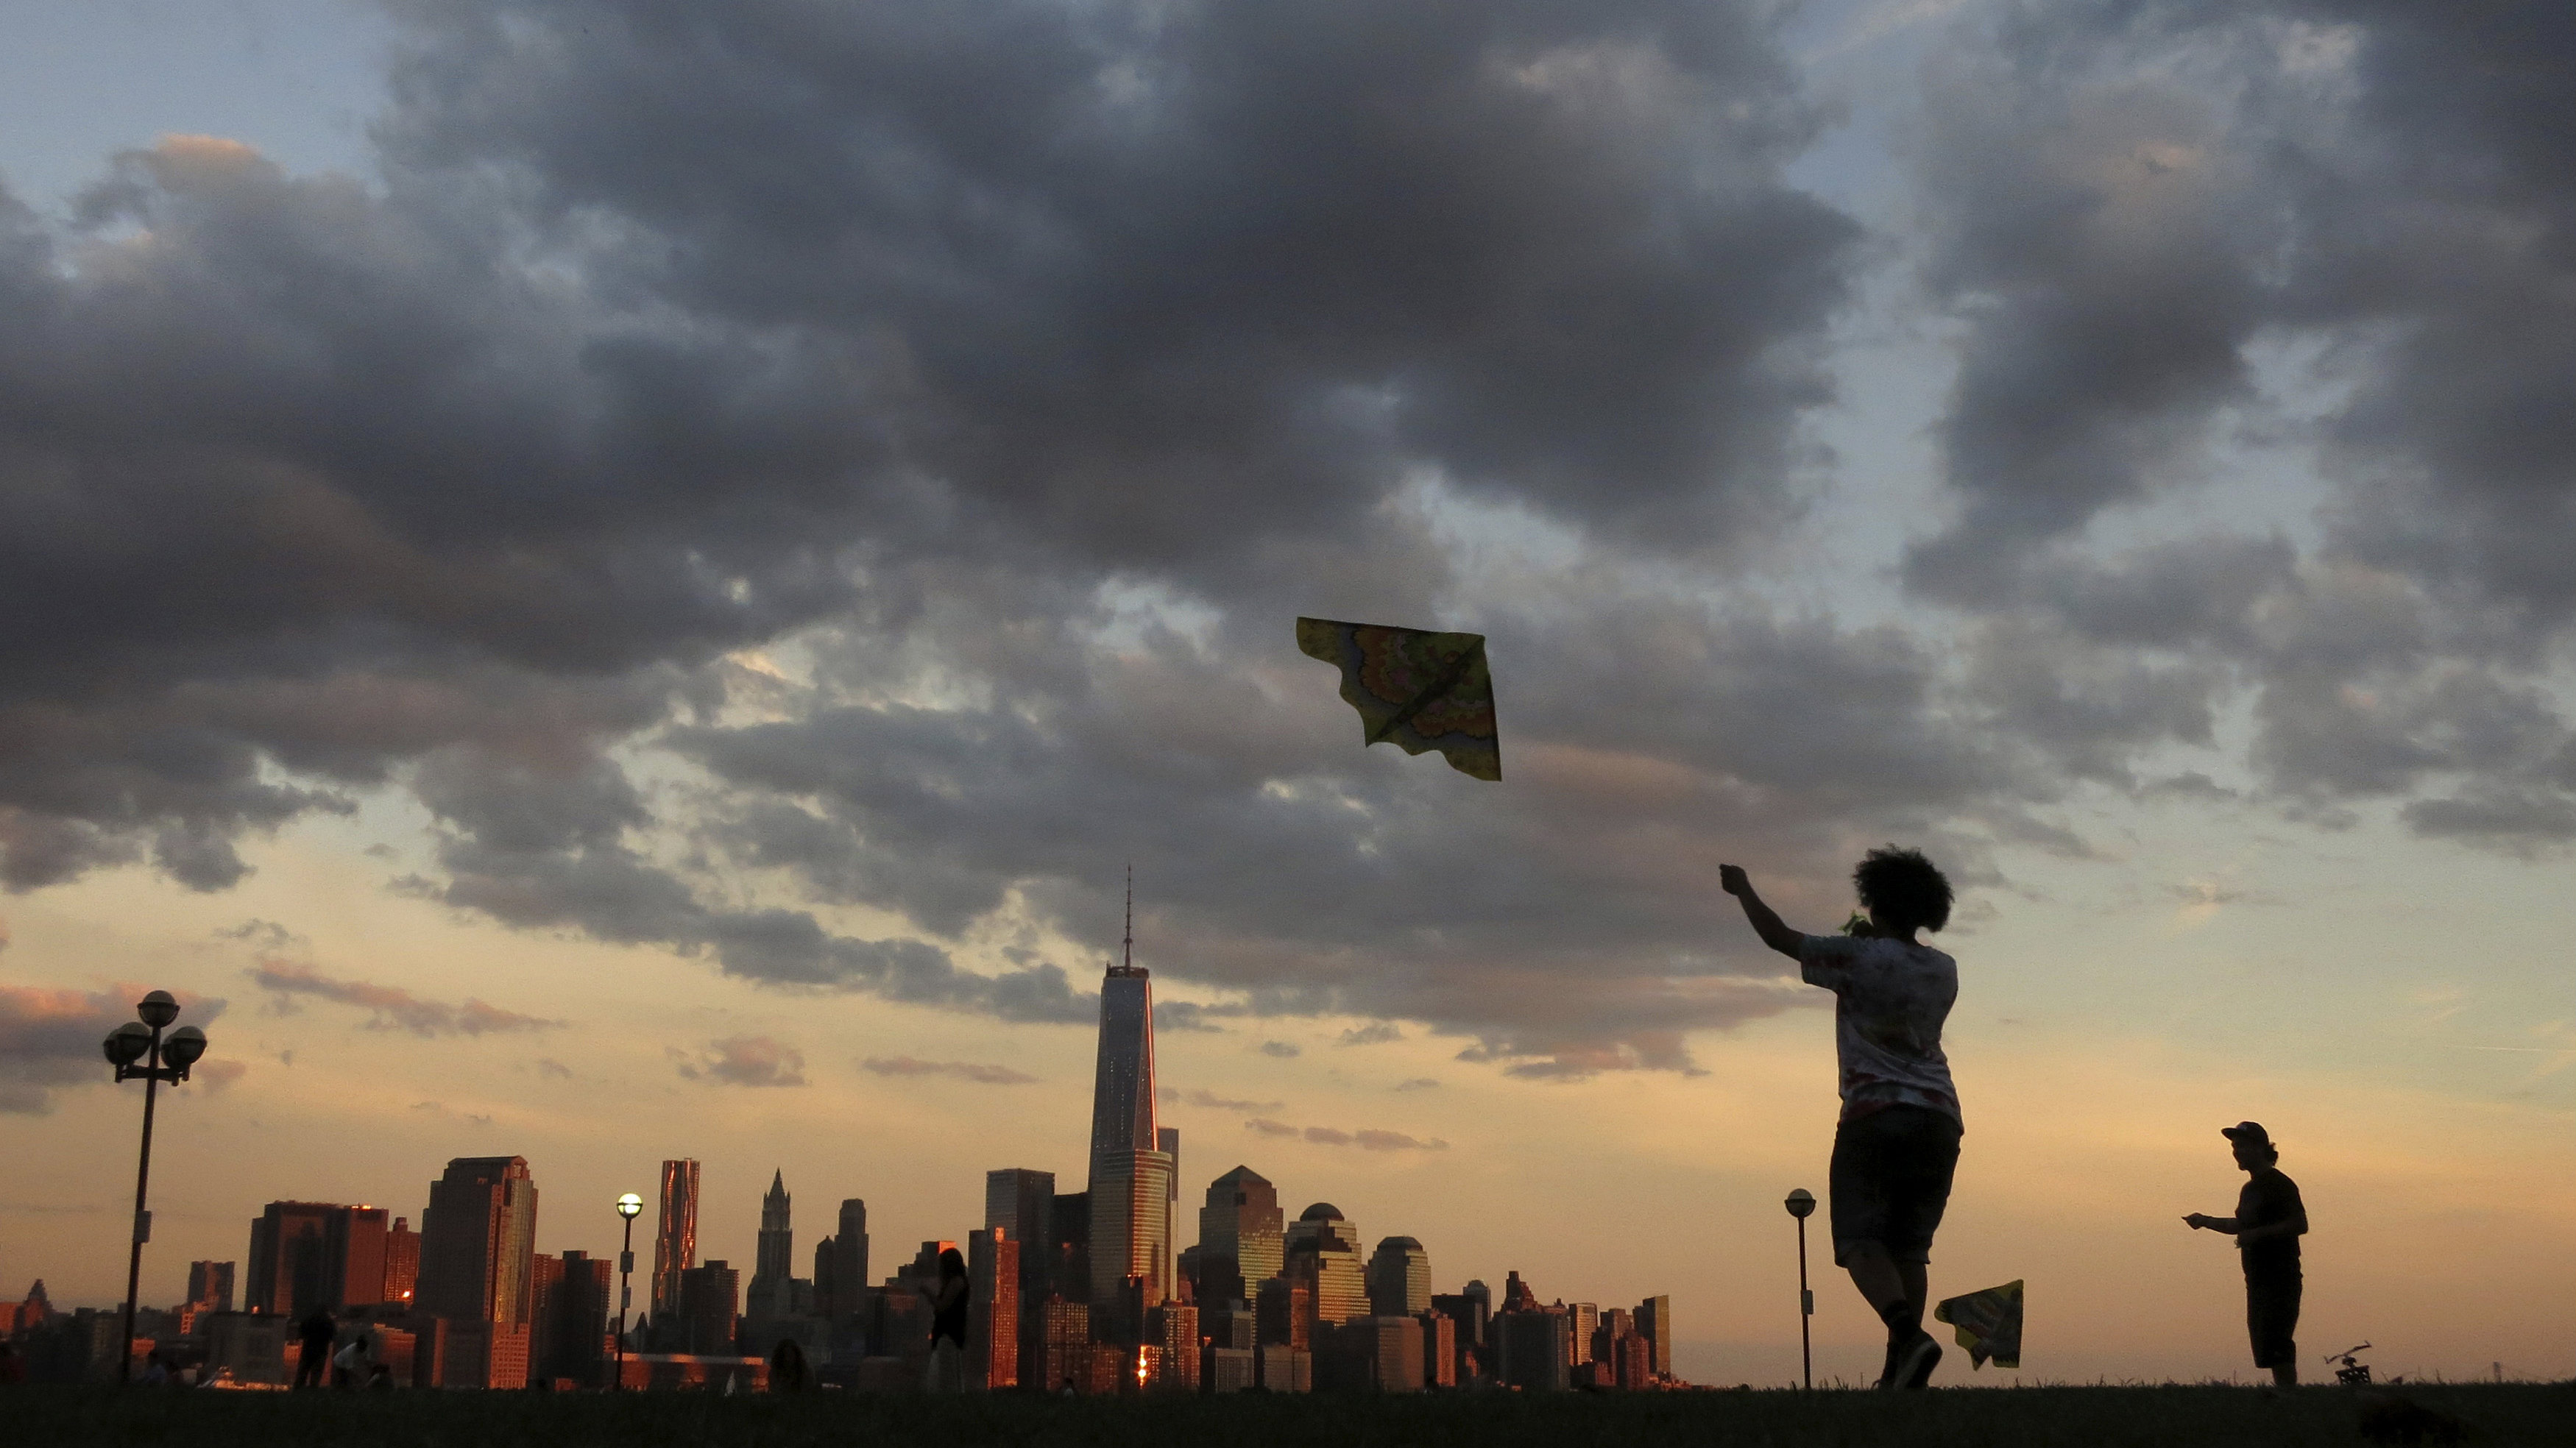 New York's Lower Manhattan skyline is seen the distance as a women flies a kite in a park along the Hudson River in Hoboken, New Jersey September 3, 2013. New York City is iconic in any weather, but the warm season adds a special flavour to its bustling streets, leafy parks and world-famous skyline. The summer is about to draw to a close, as fall begins in the northern hemisphere with the Autumnal Equinox on September 22. Picture taken September 3, 2013.